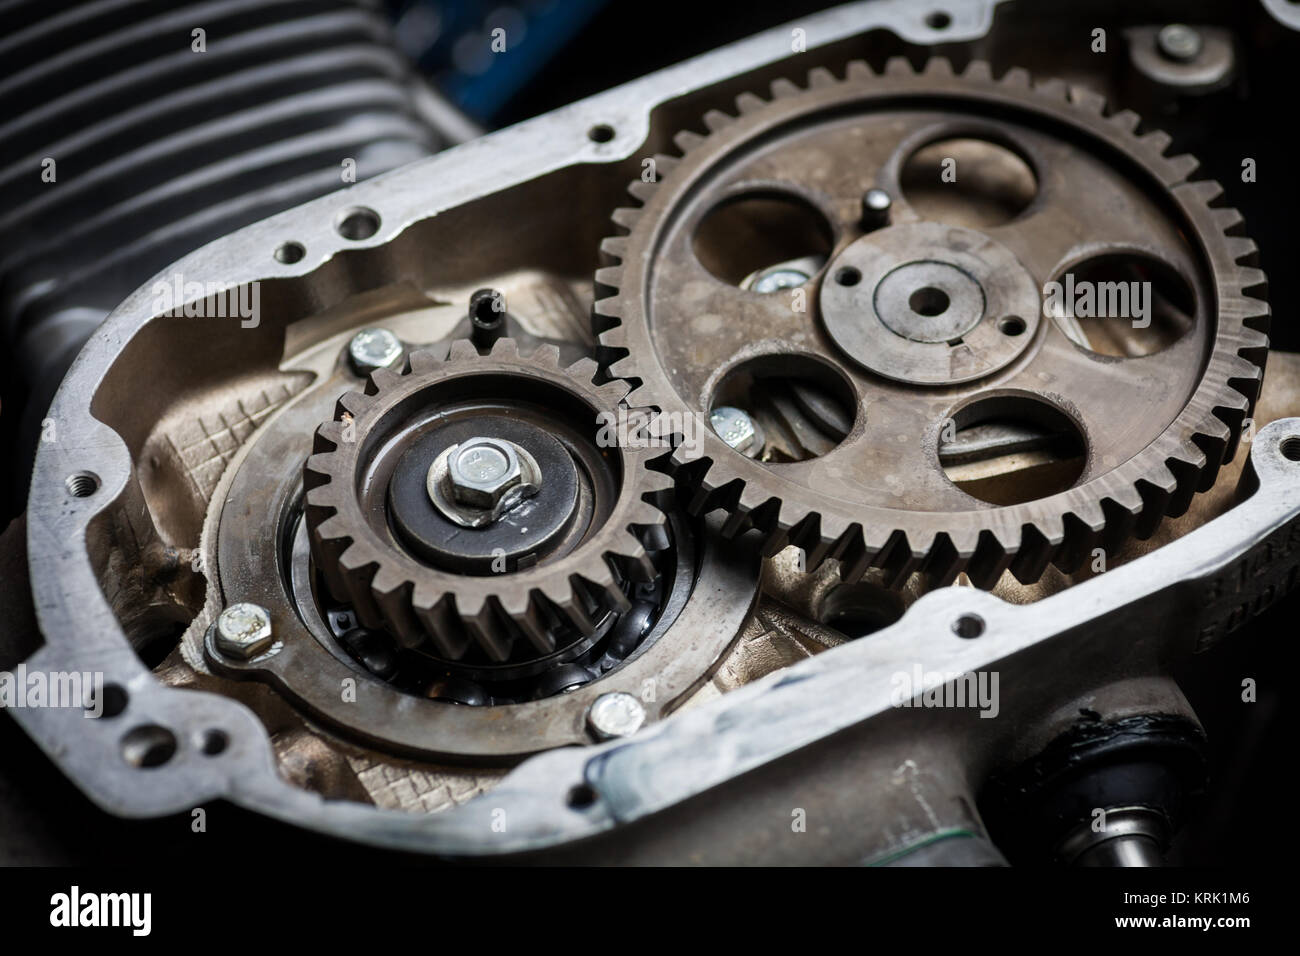 Boxer Engine Stock Photos Images Alamy Alfa Romeo Timing Gear Sprockets In Image